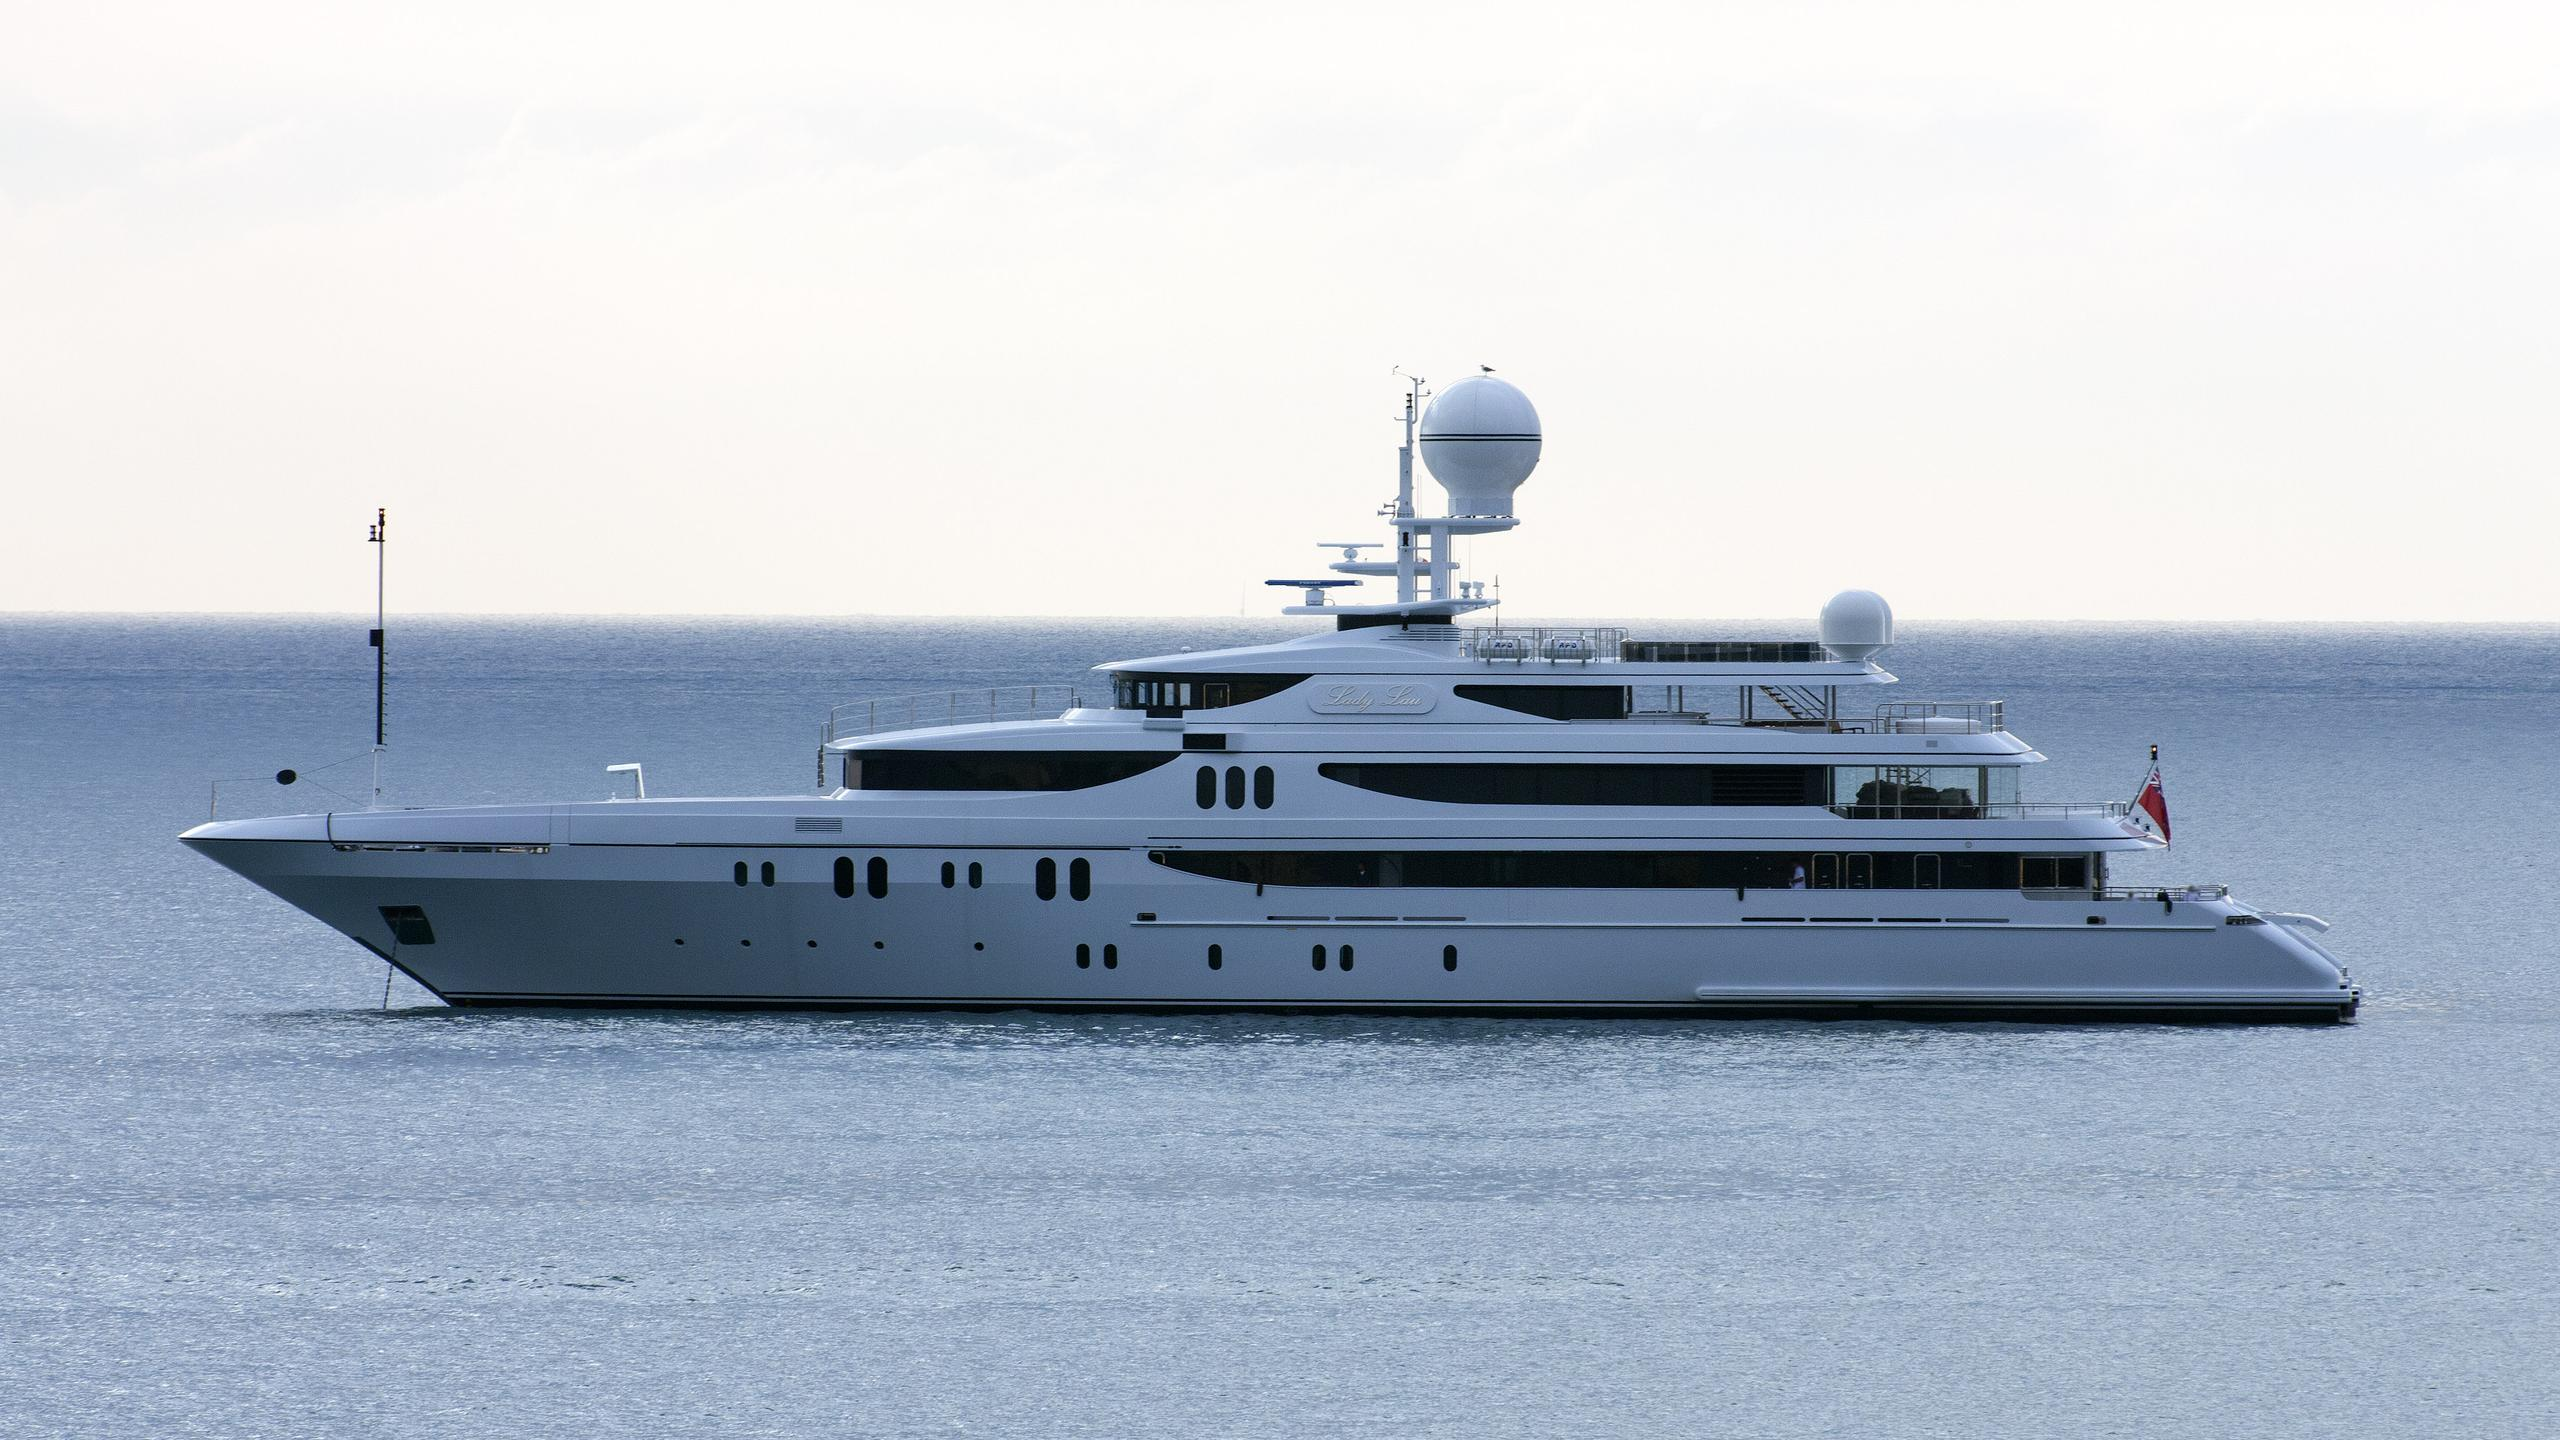 double-down-motor-yacht-codecasa-2010-65m-profile